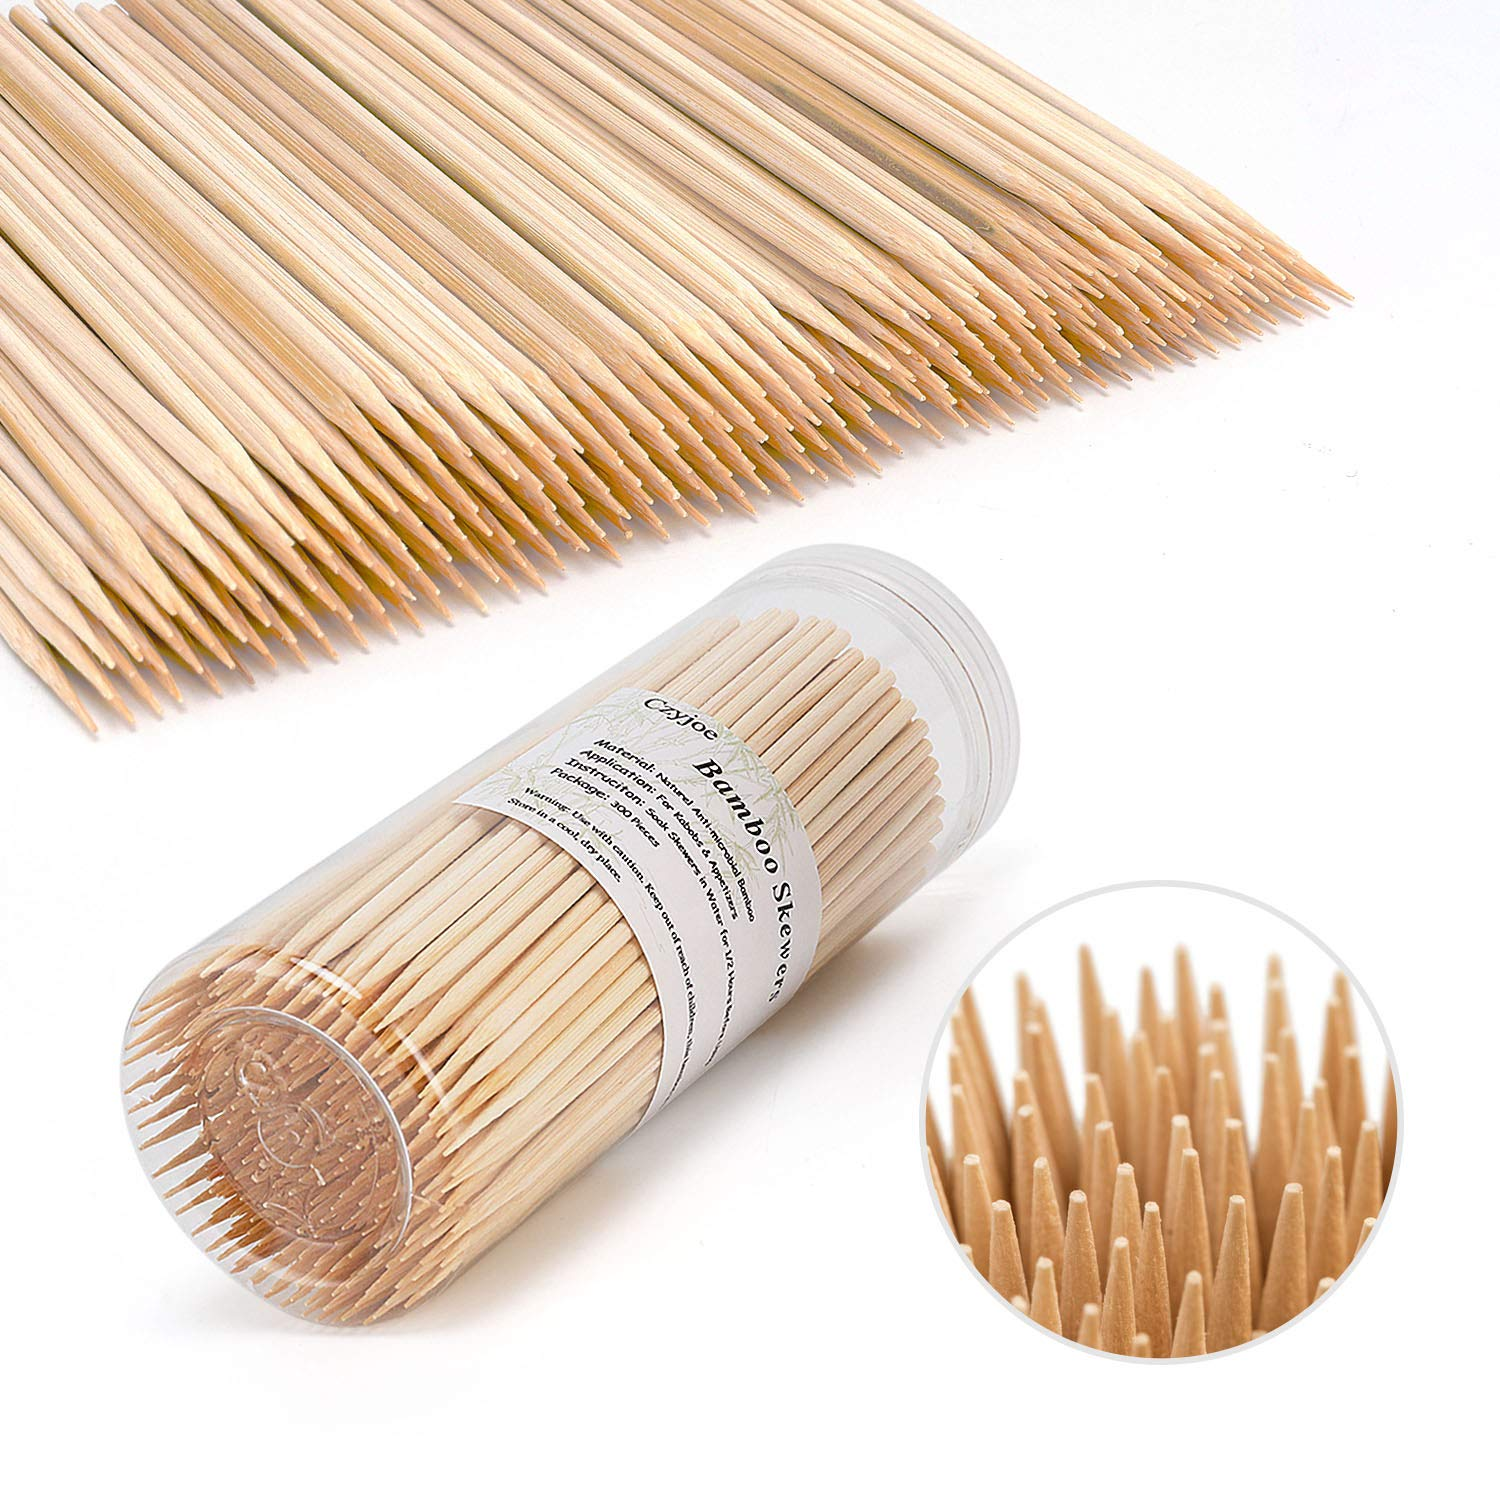 Bamboo Skewers BBQ Natural Bamboo Sticks for Appetizers, Cocktails, Caramel, Candy Apple, Corn Dog, Corn Cob, Chocolate Fountain, Kabob, Grill (4 inch -300pcs) Czyjoe